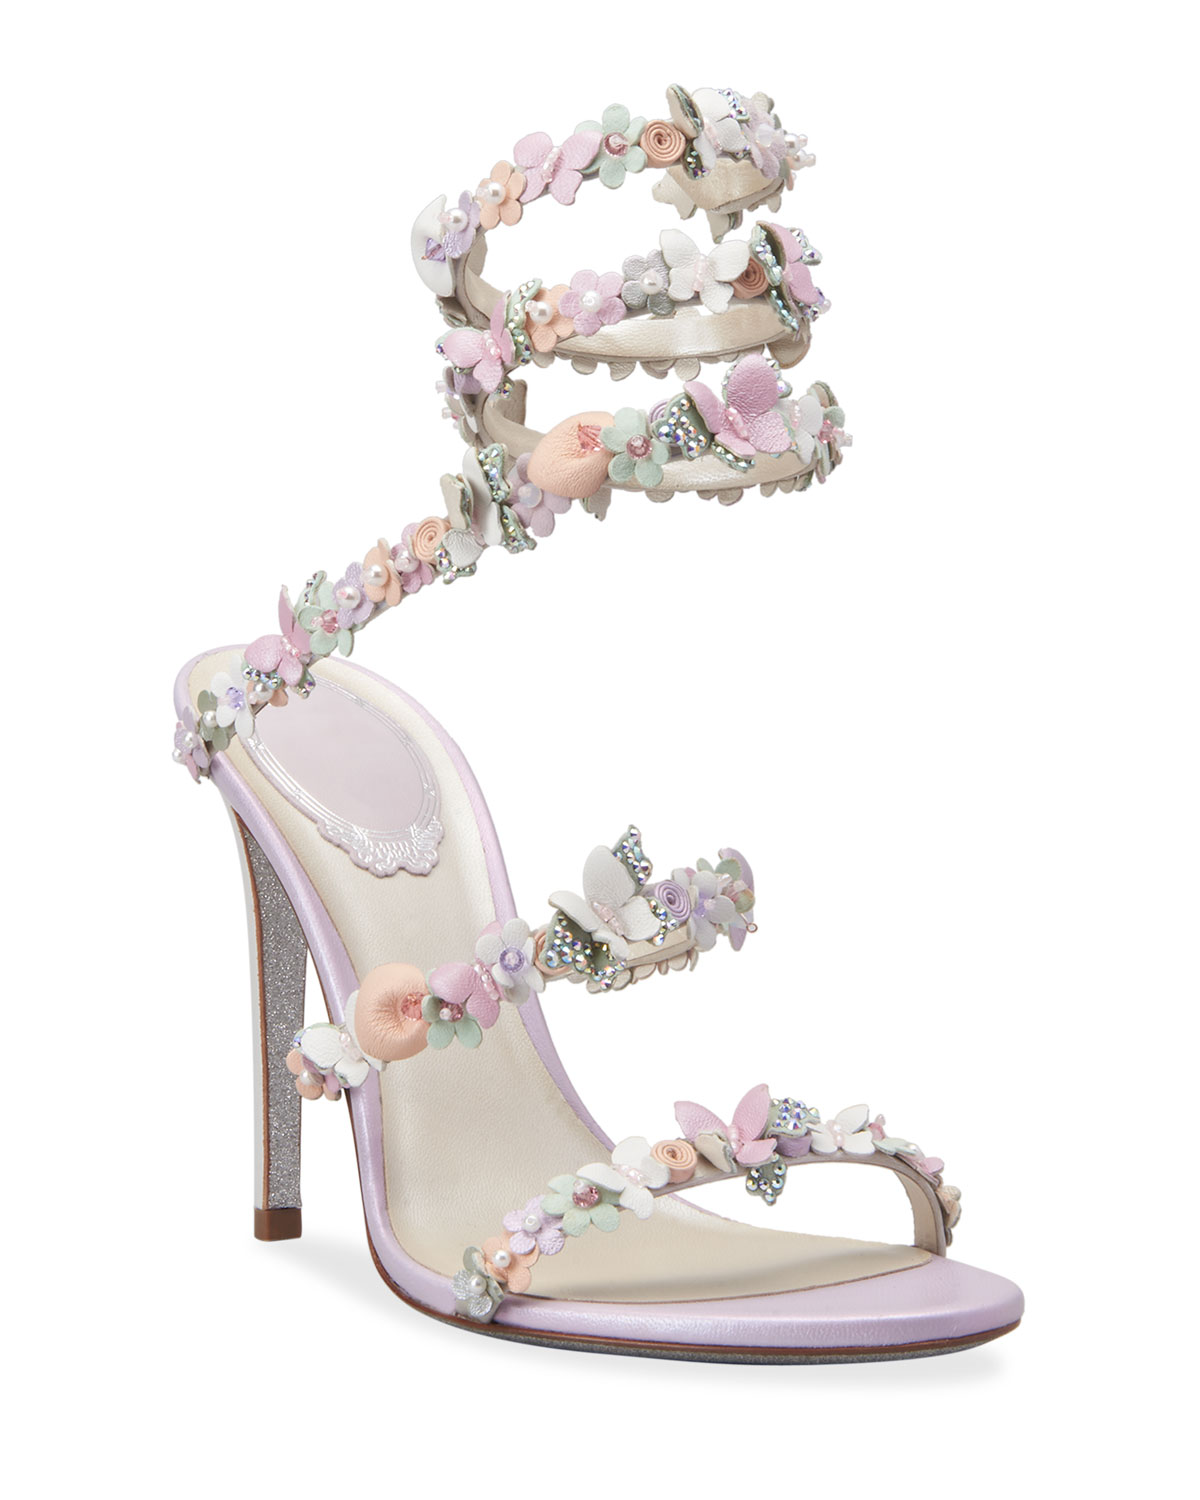 105mm Snake-Ankle Floral Butterfly Sandals